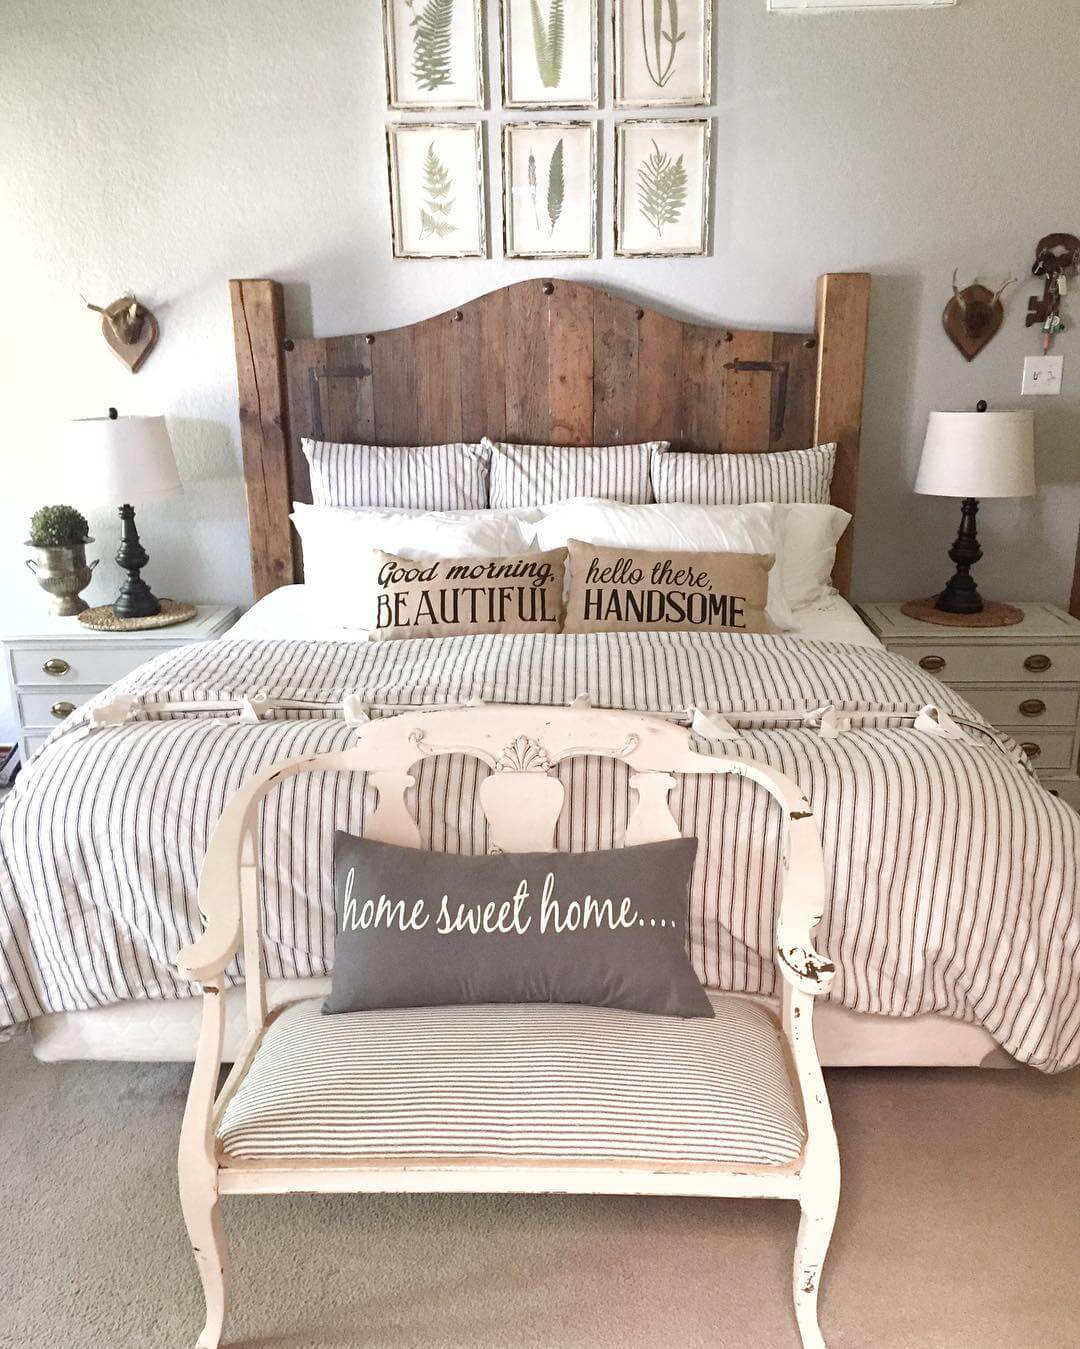 Bedroom Decor Decor Homestead Chic Romantic Bedroom Decor Ideas On A ...